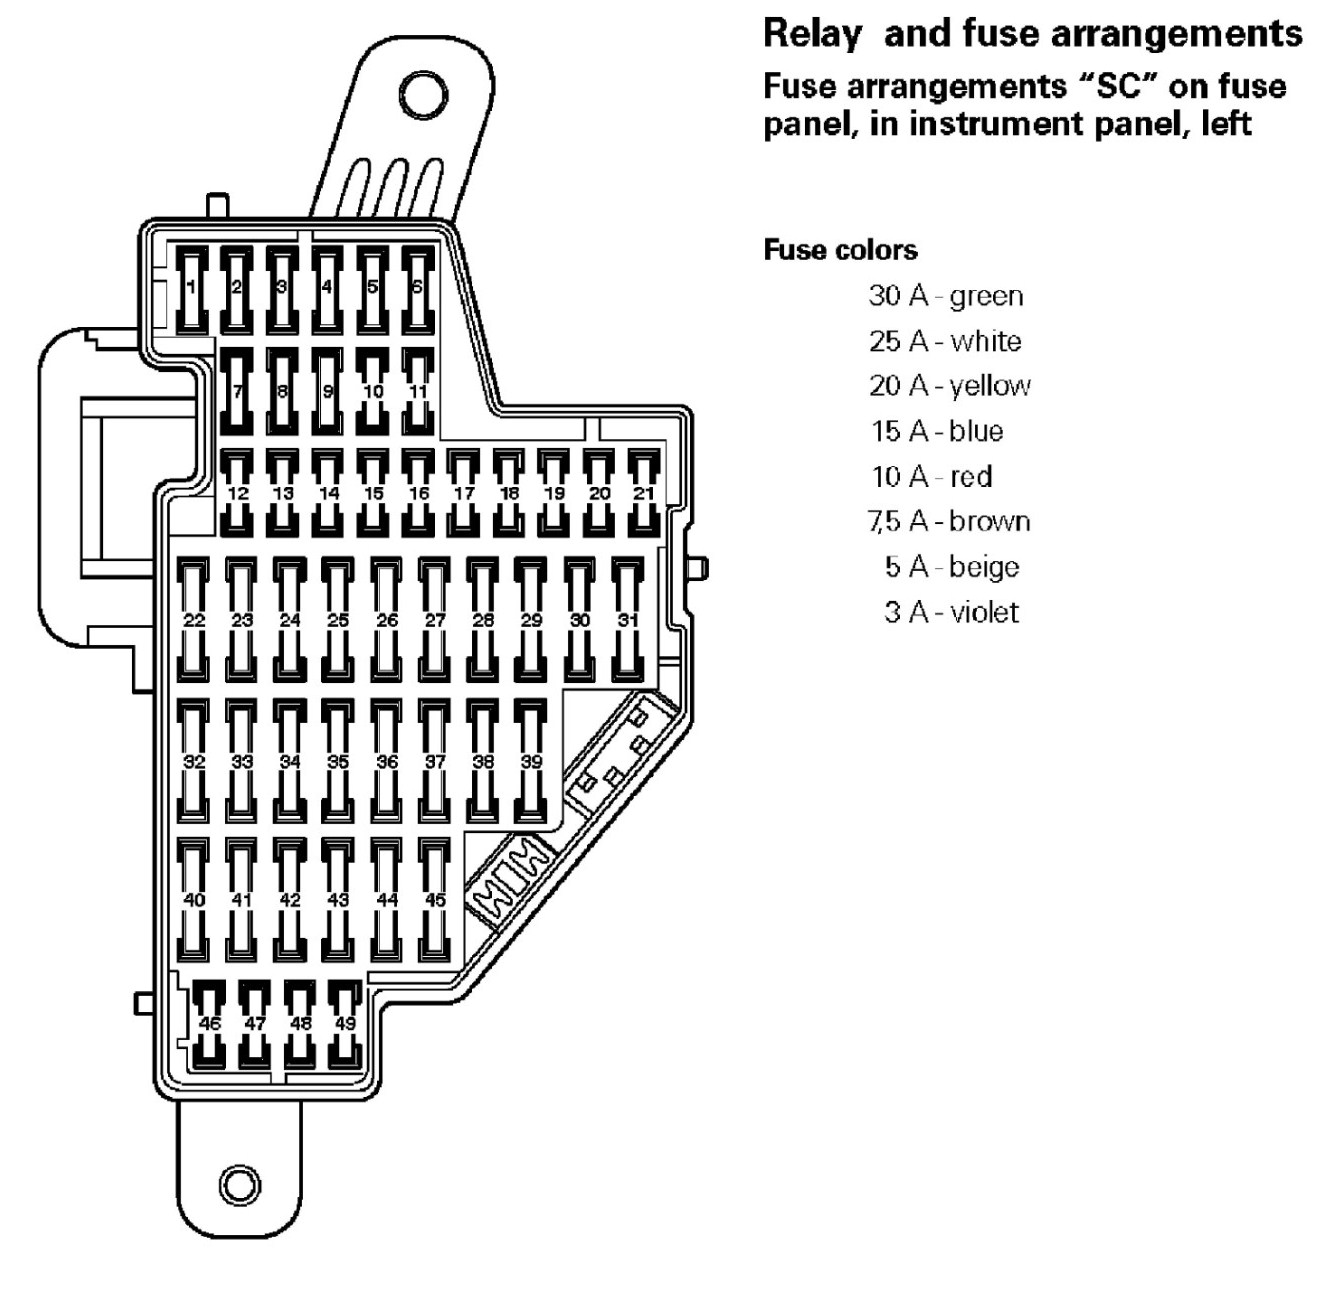 02 Jetta Fuse Diagram Wiring Libraries 2002 1 8t Box Vw Tdi Schematic Diagramsvw Todays